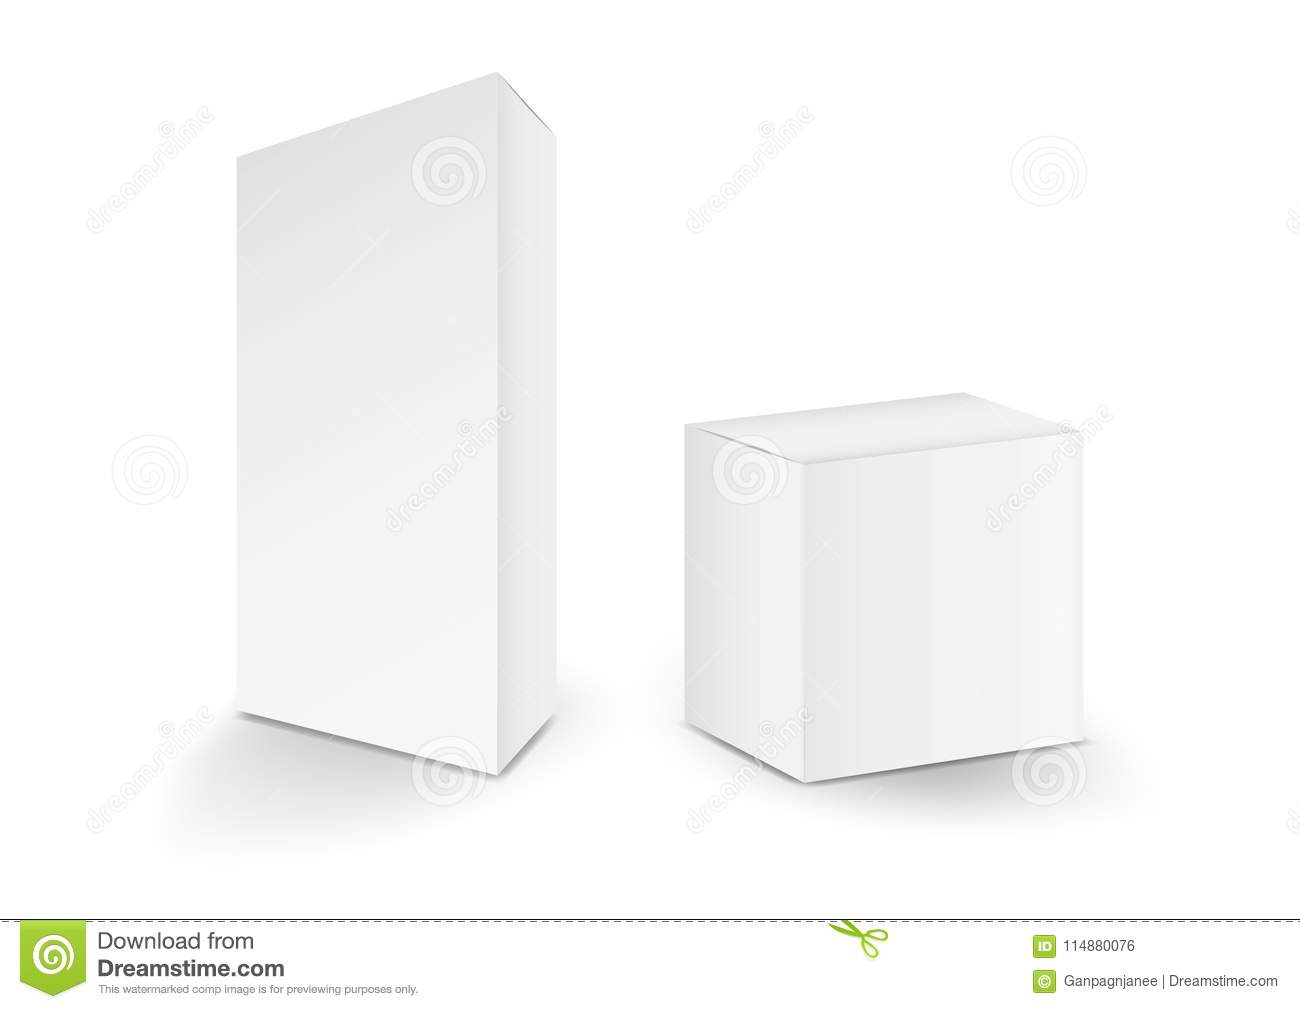 White boxes, Package, 3d box, product design,Vector illustration